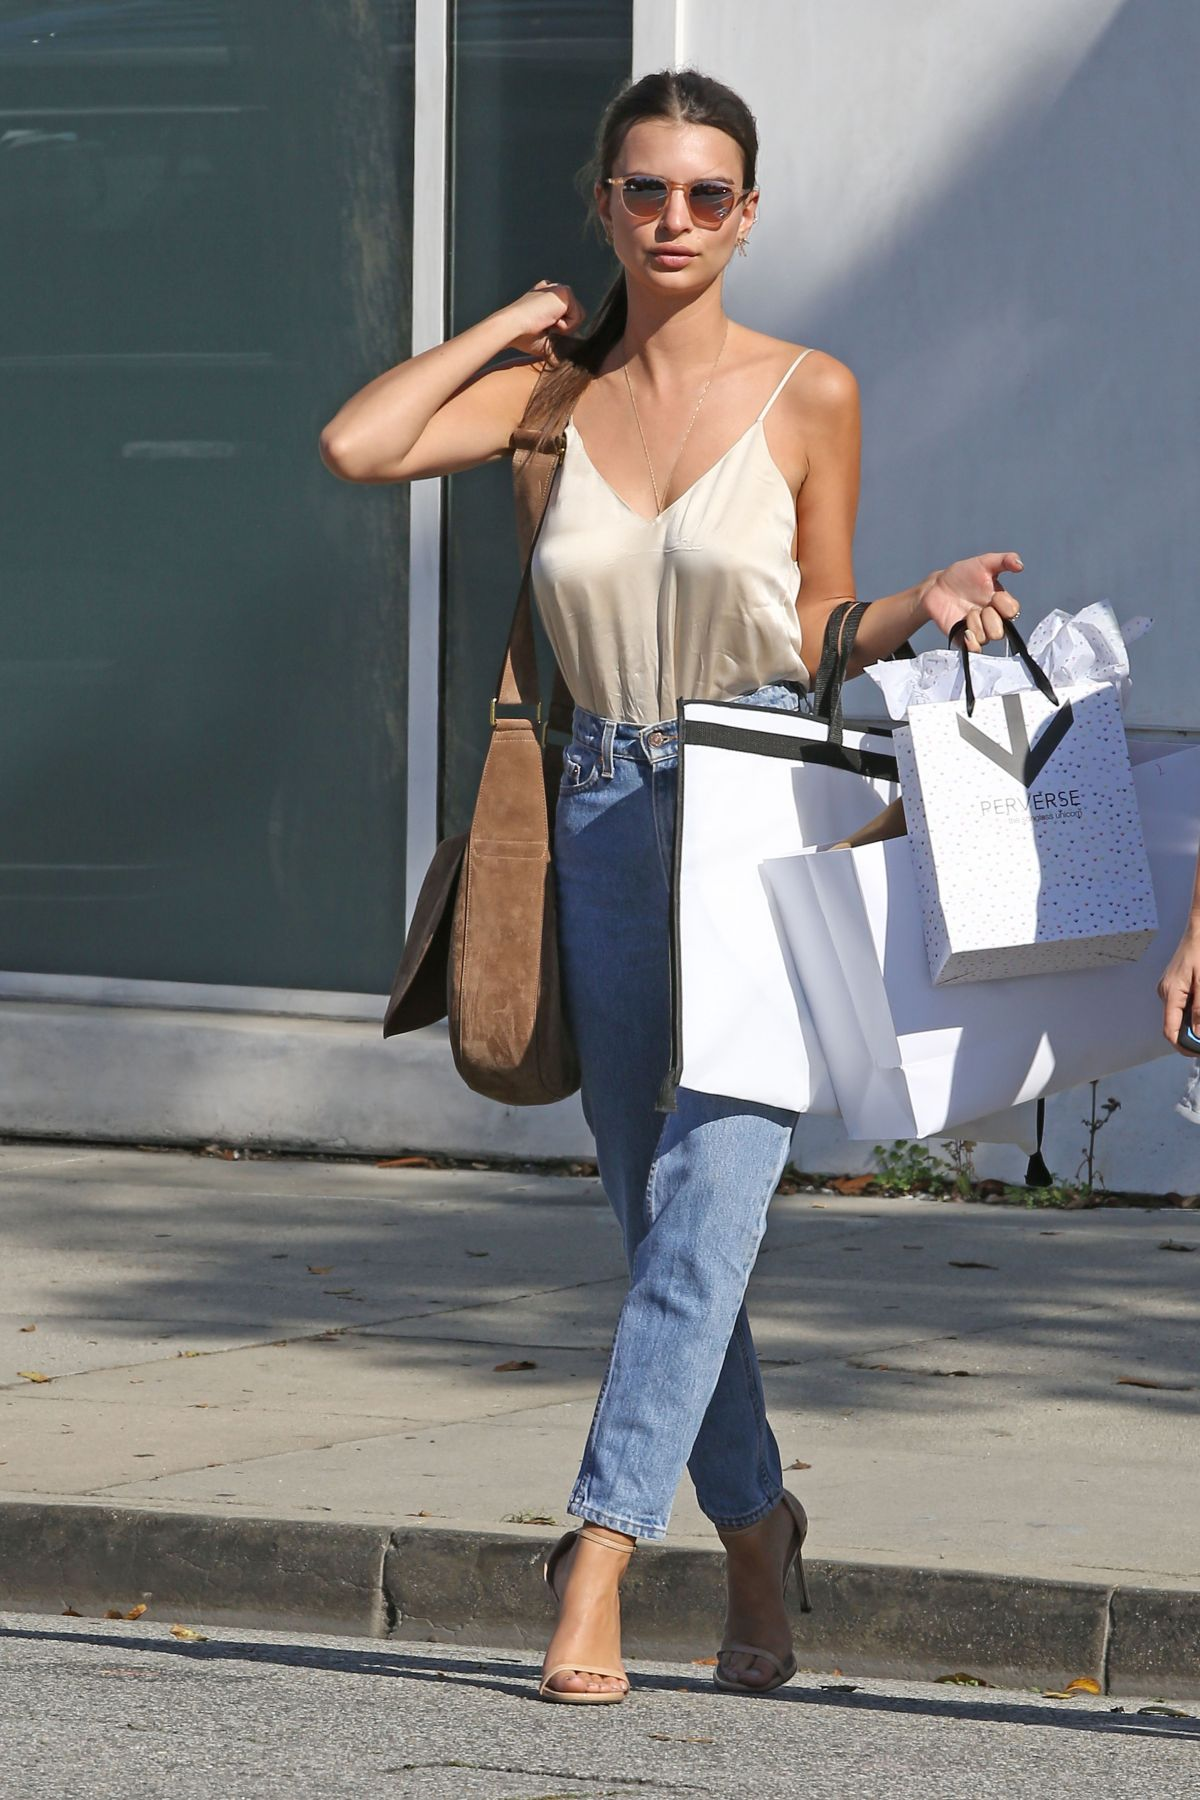 emily-ratajkowski-out-shopping-in-beverly-hills-04-12-2016_8